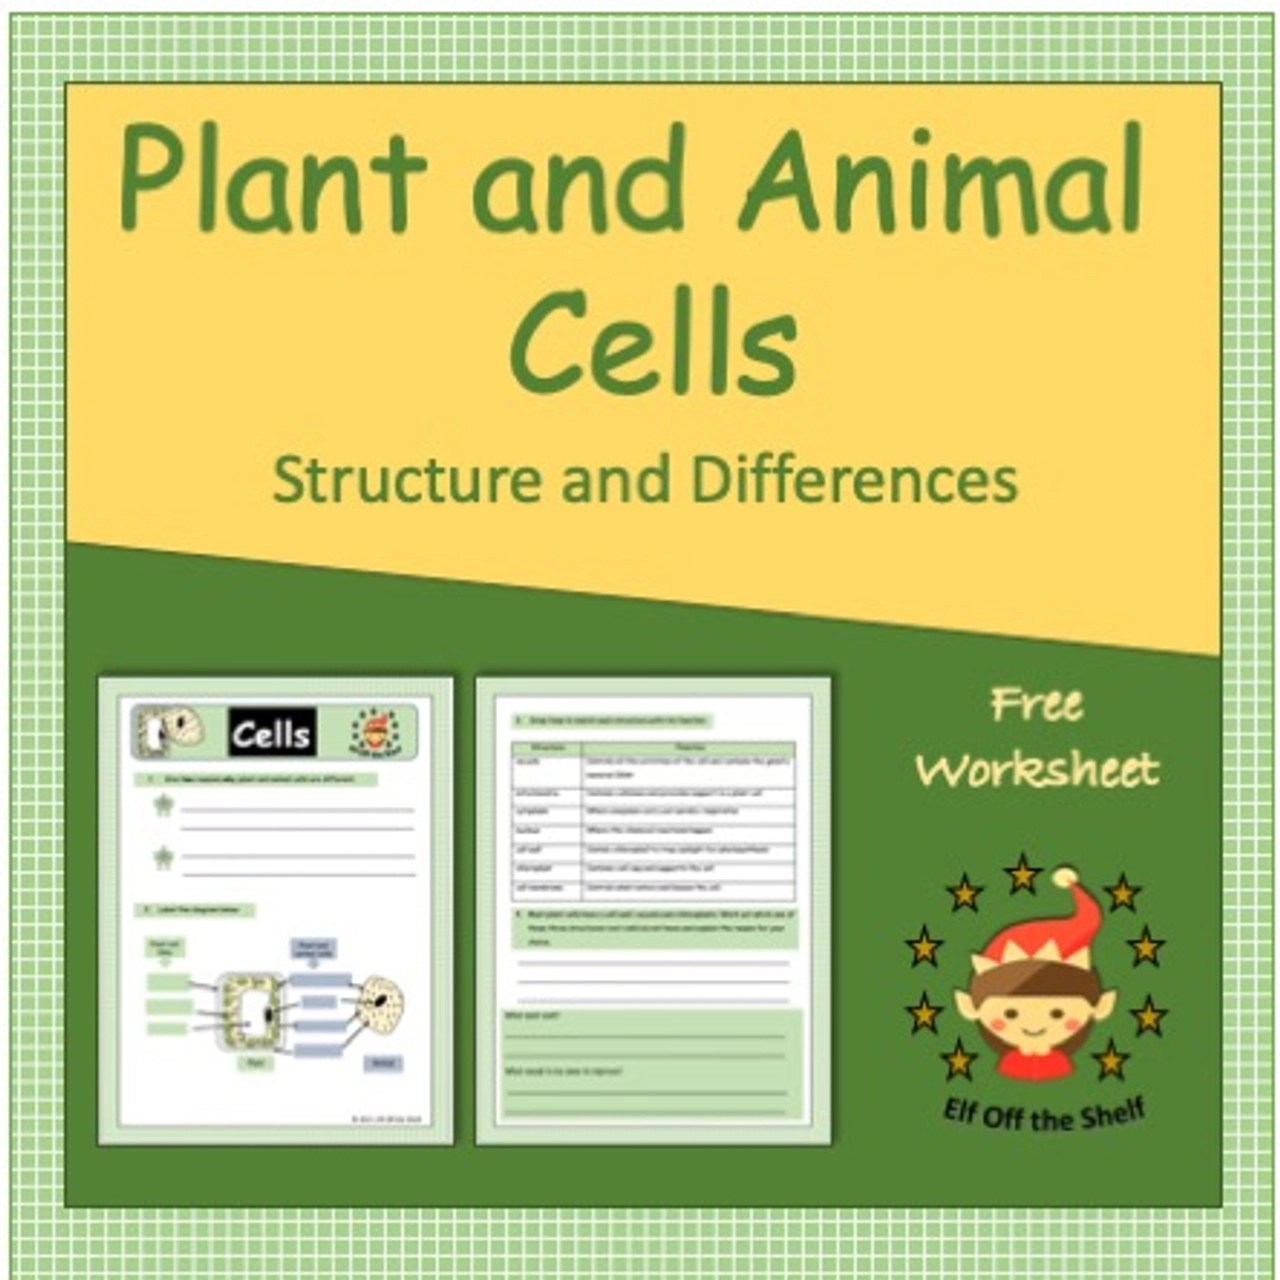 medium resolution of Plant and Animal Cells - Structure and Differences - Free Worksheet - Amped  Up Learning